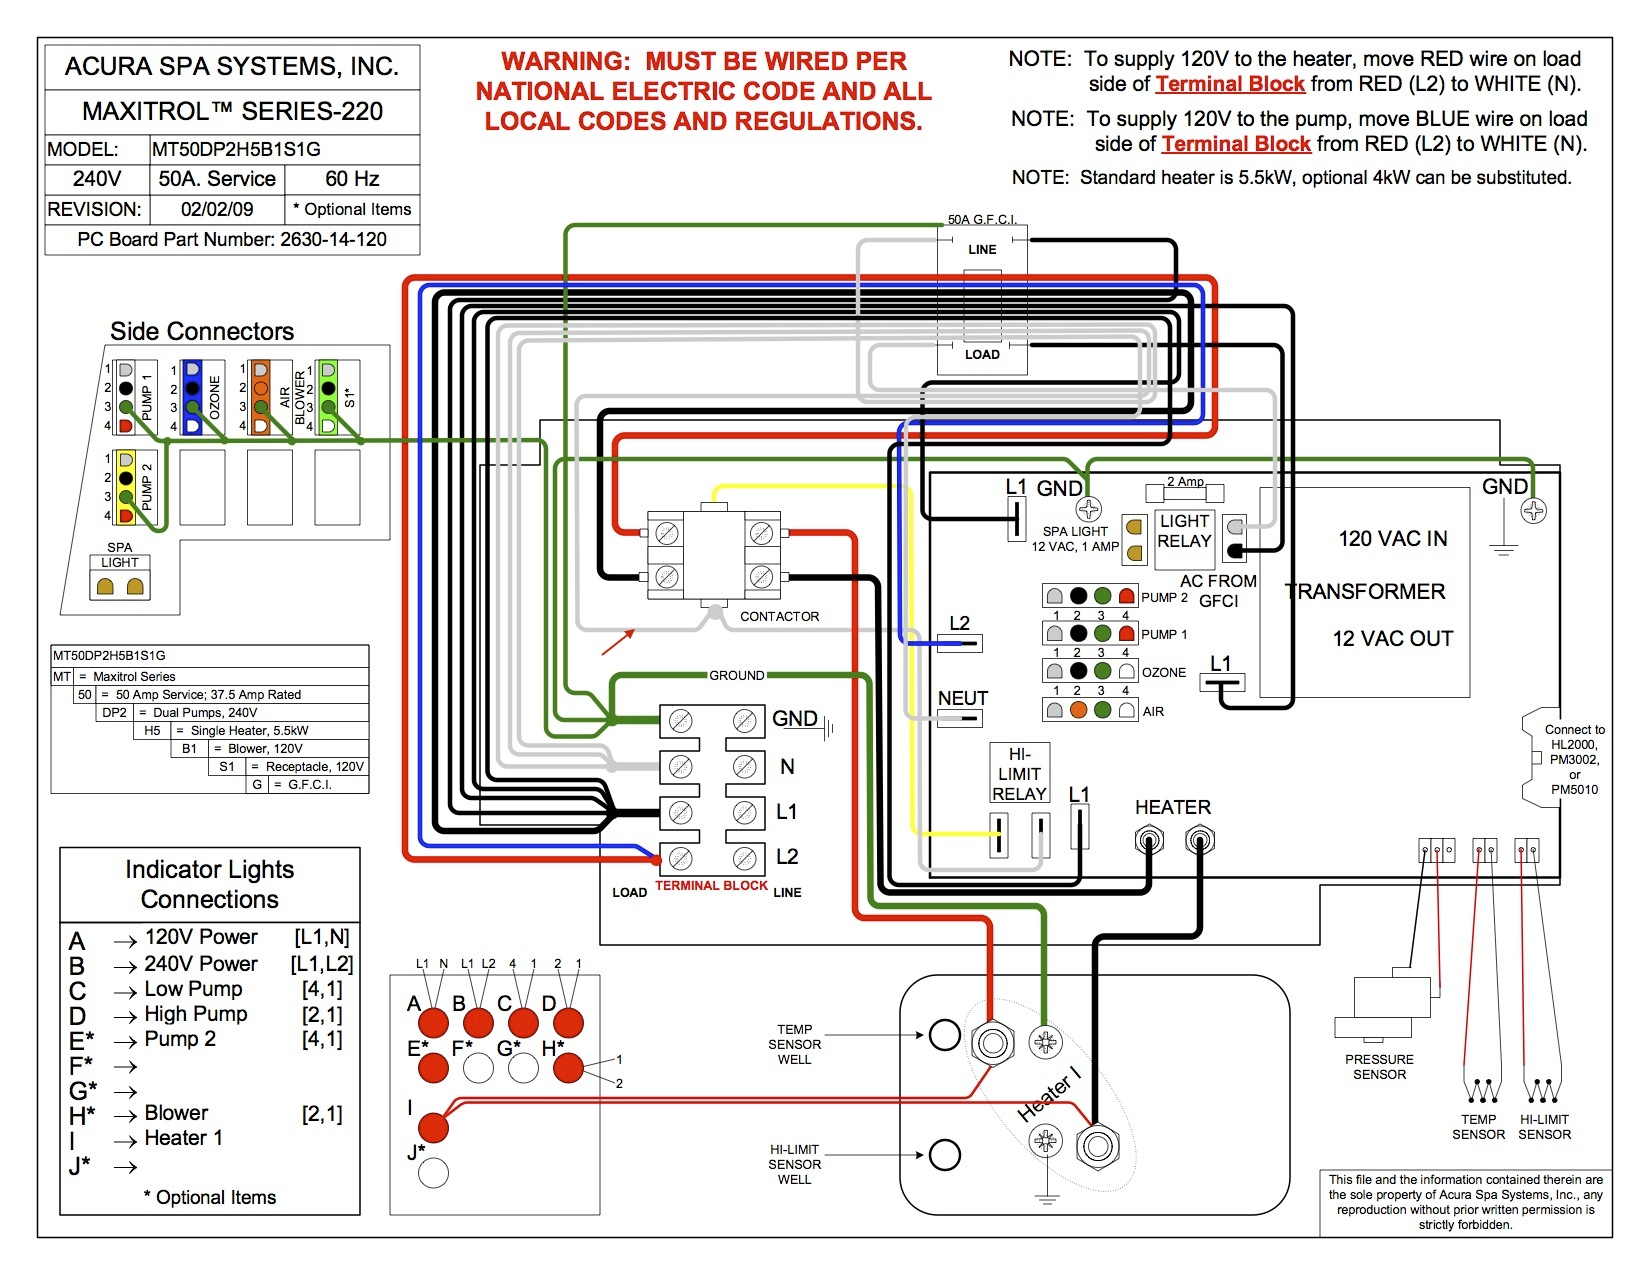 Acura Spa Wiring Diagram MT50DP2H5B1S1G spa pump motor wiring diagram, century motors used in ultra jet stair lift wiring diagram at reclaimingppi.co